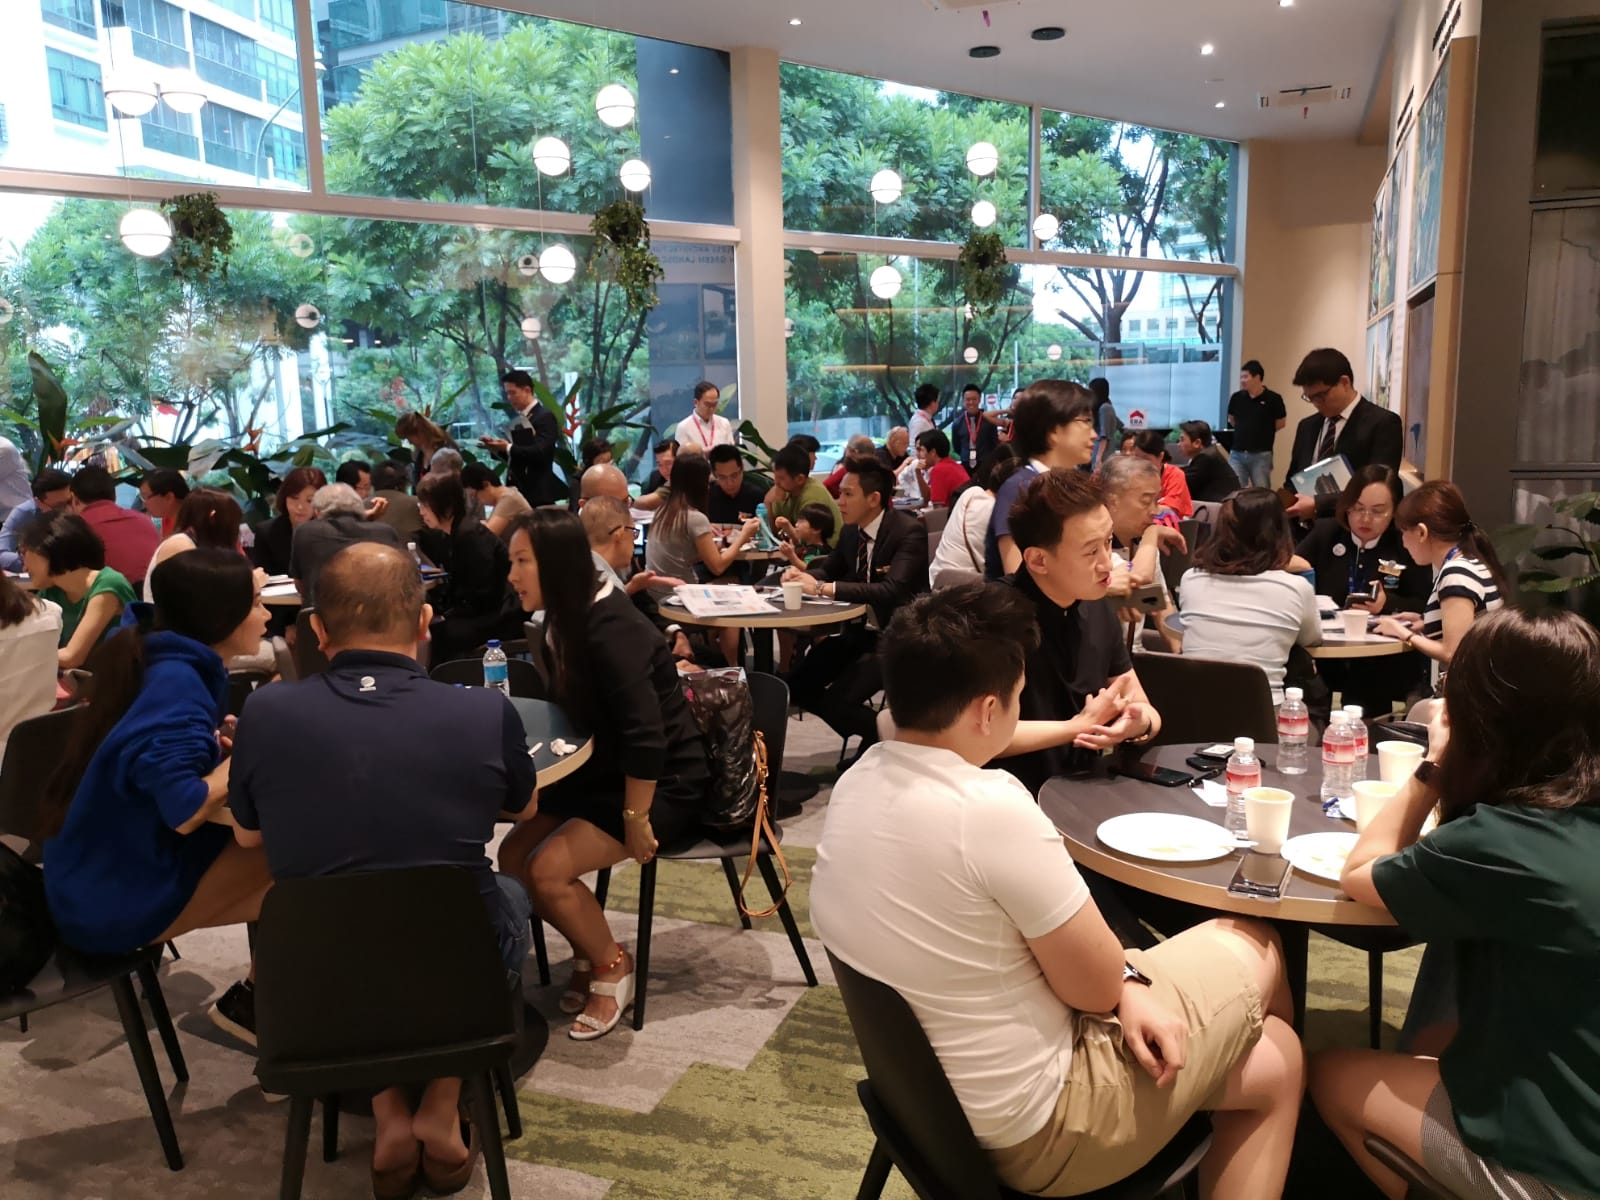 Crowd at Fyve Derbyshire at launch weekend in January 2019 (Photo: Roxy-Pacific Holdings) - EDGEPROP SINGAPORE